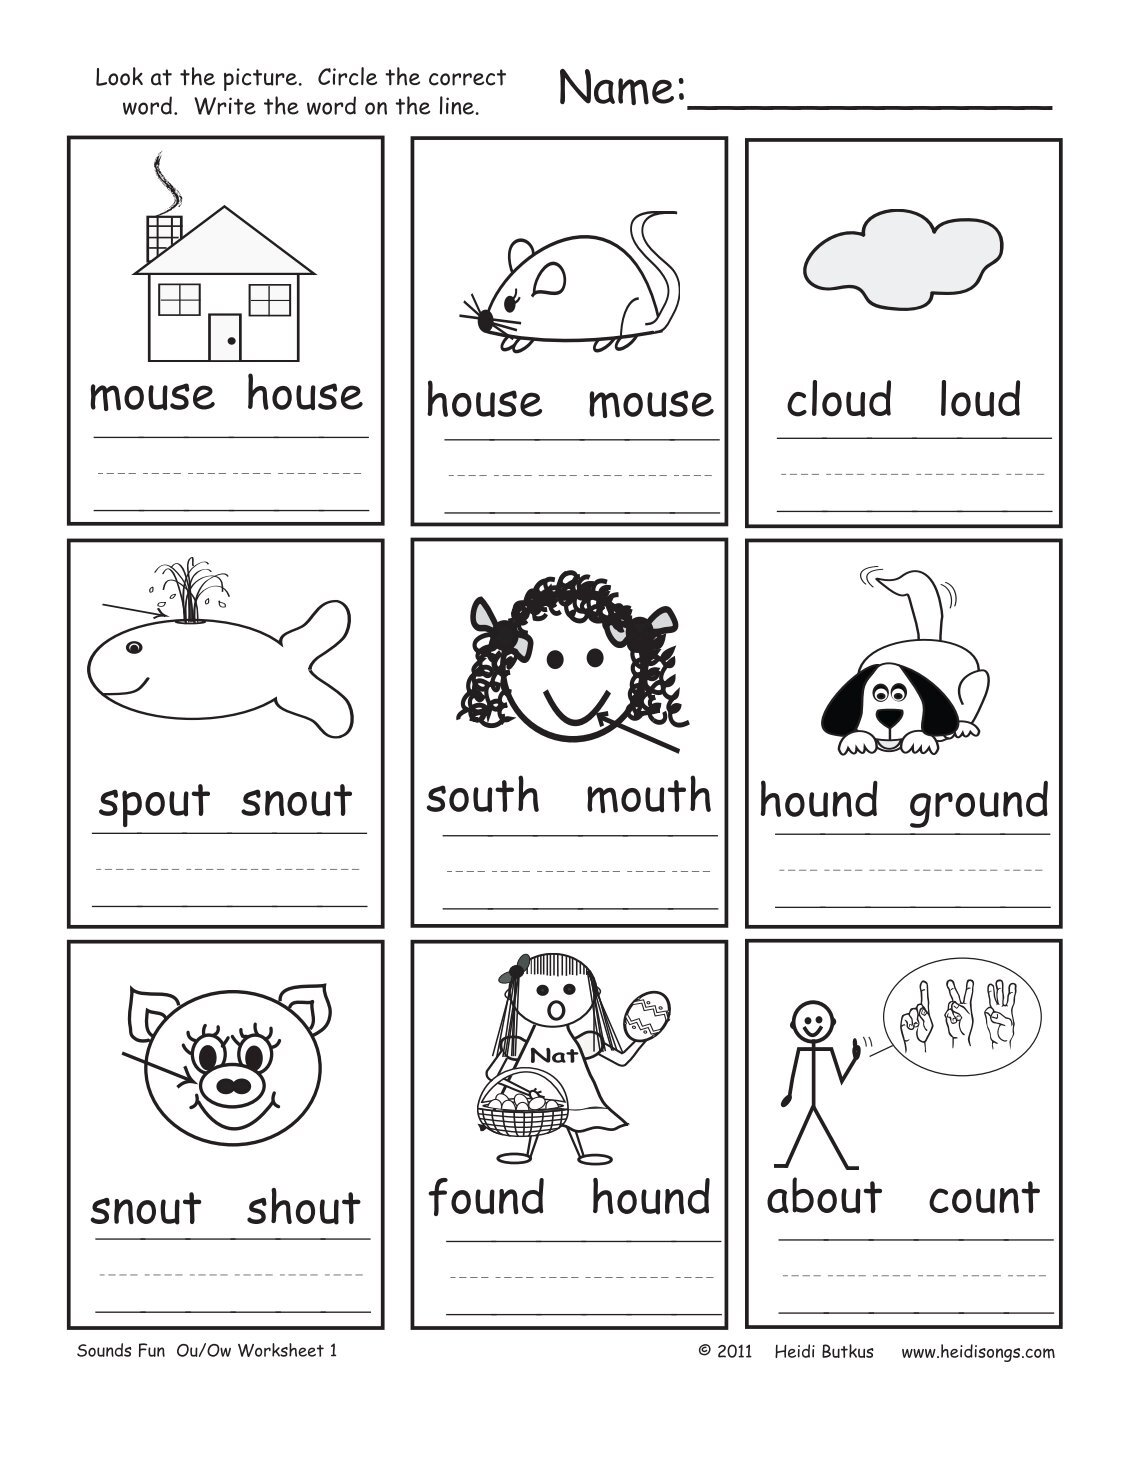 worksheet Ou Ow Worksheets 140 free magazines from heidisongs com com